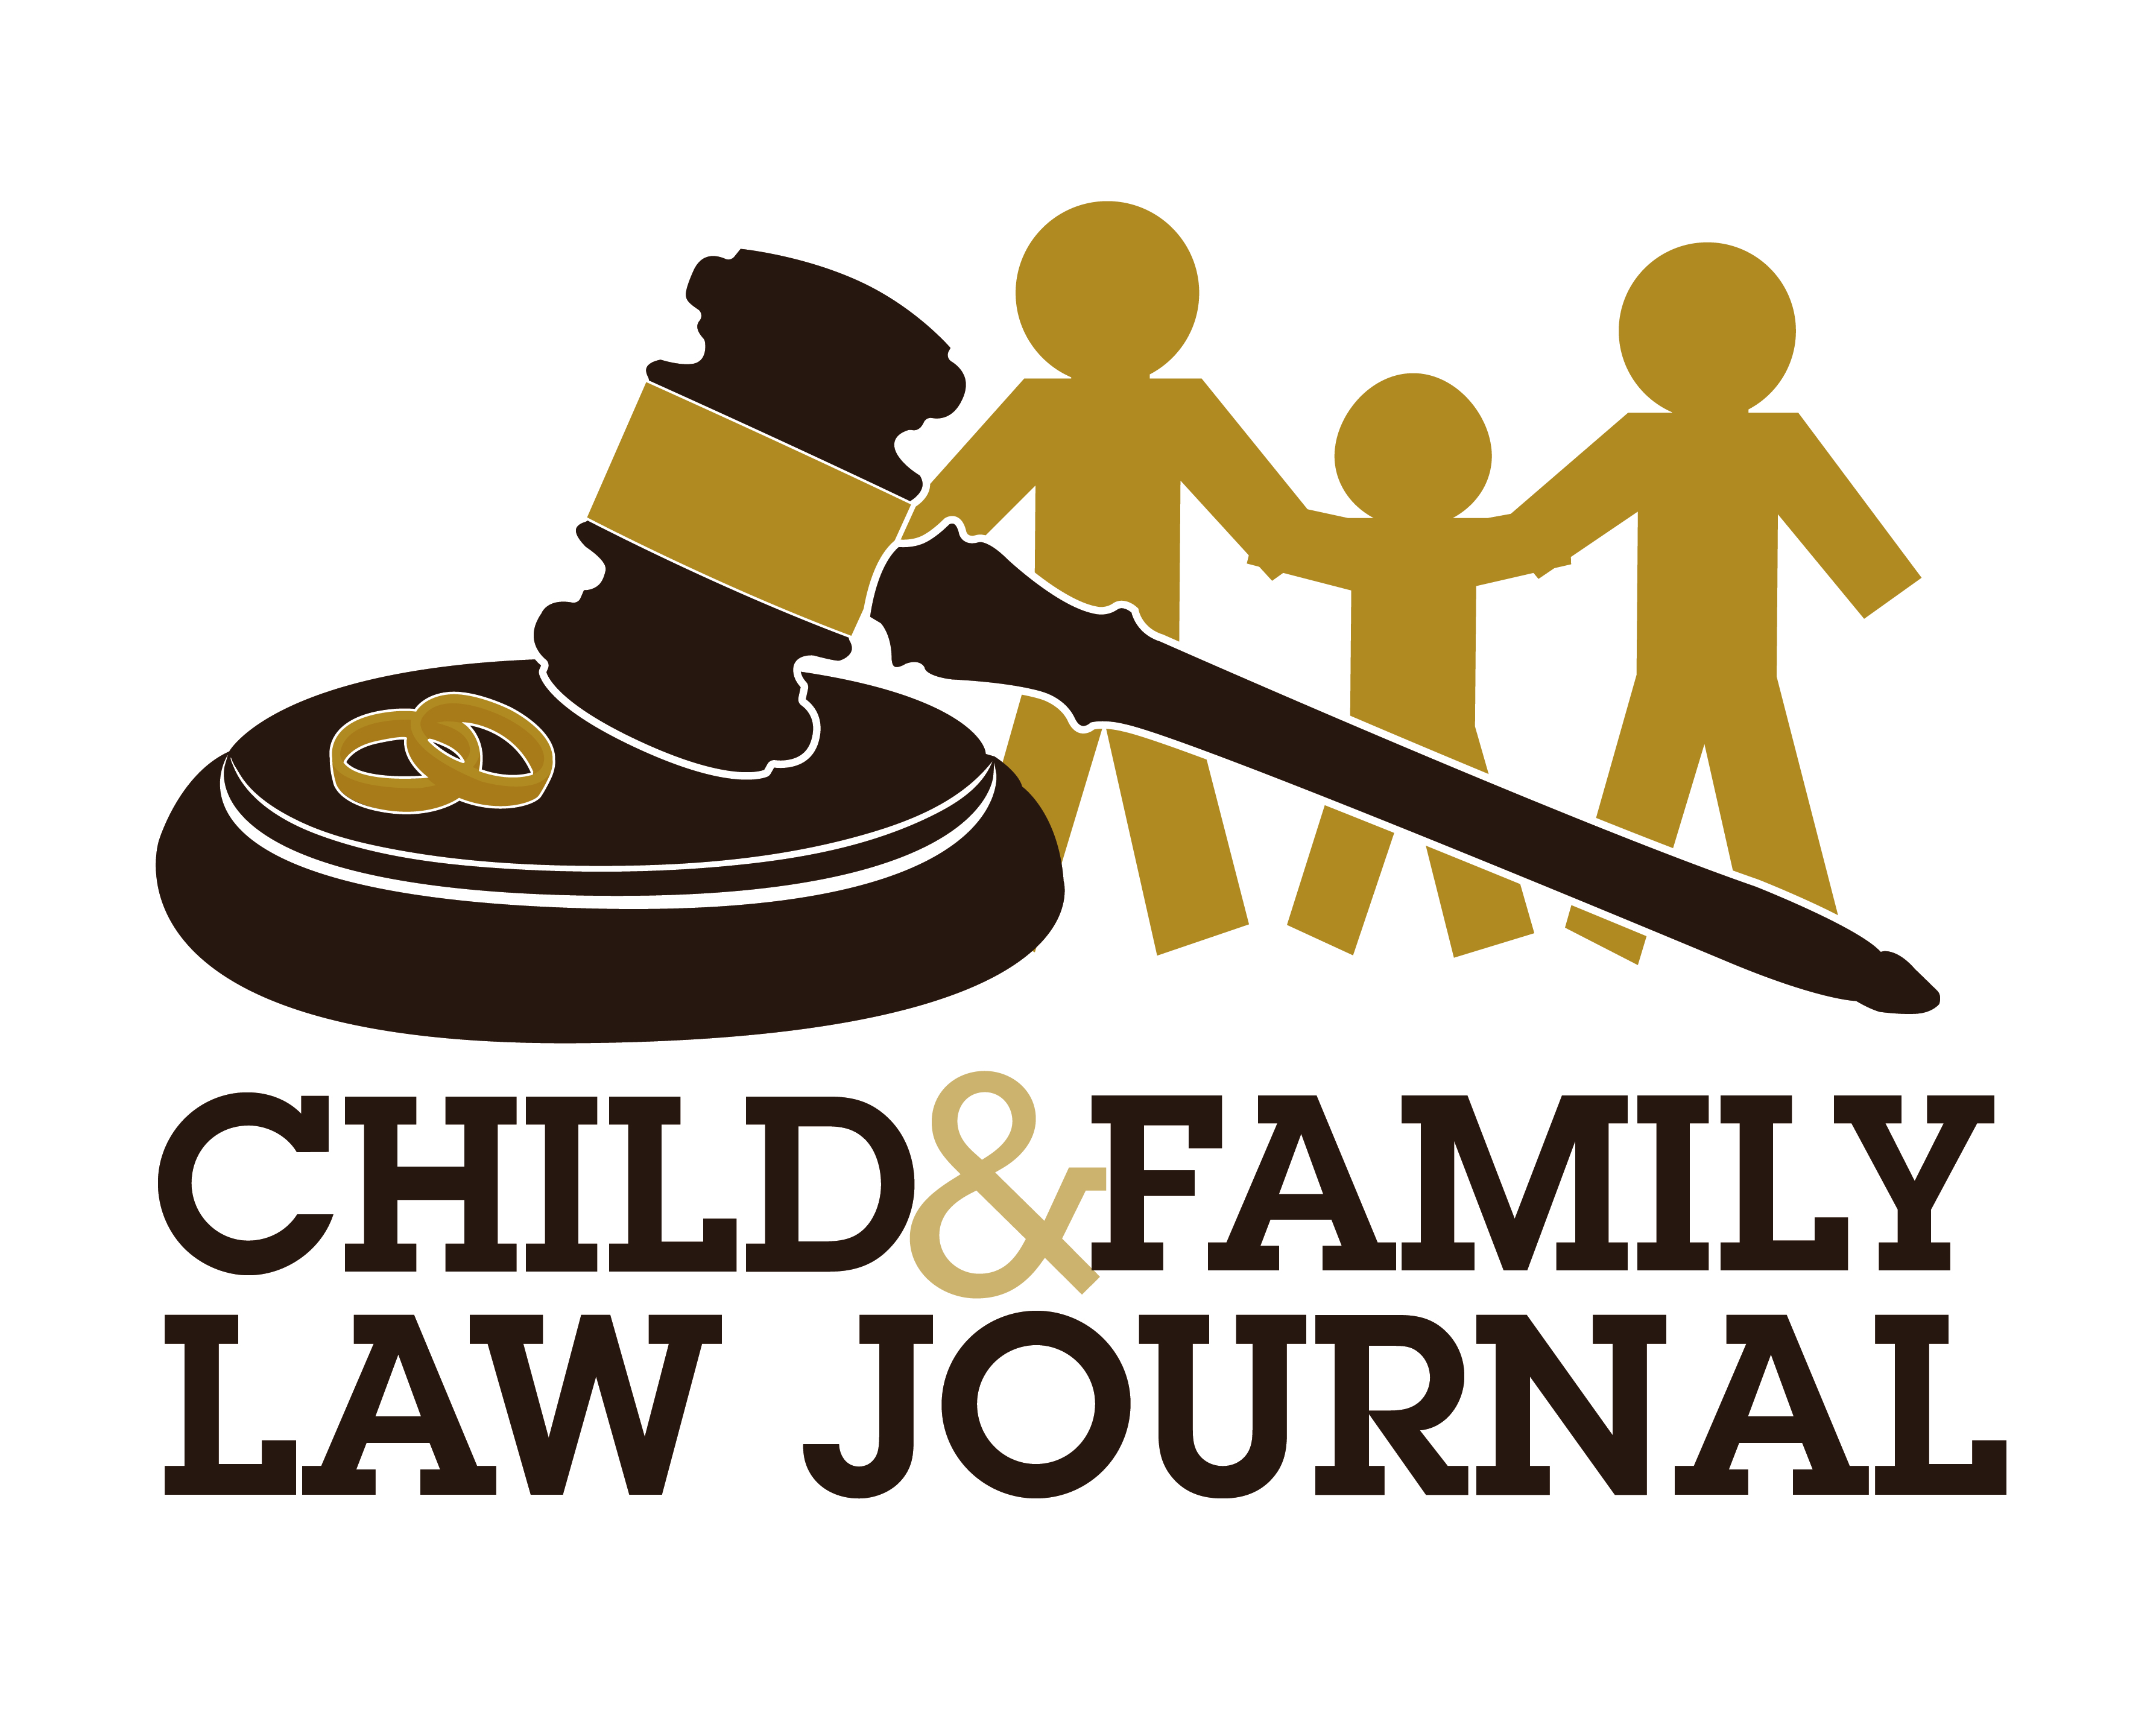 Child and Family Law Journal